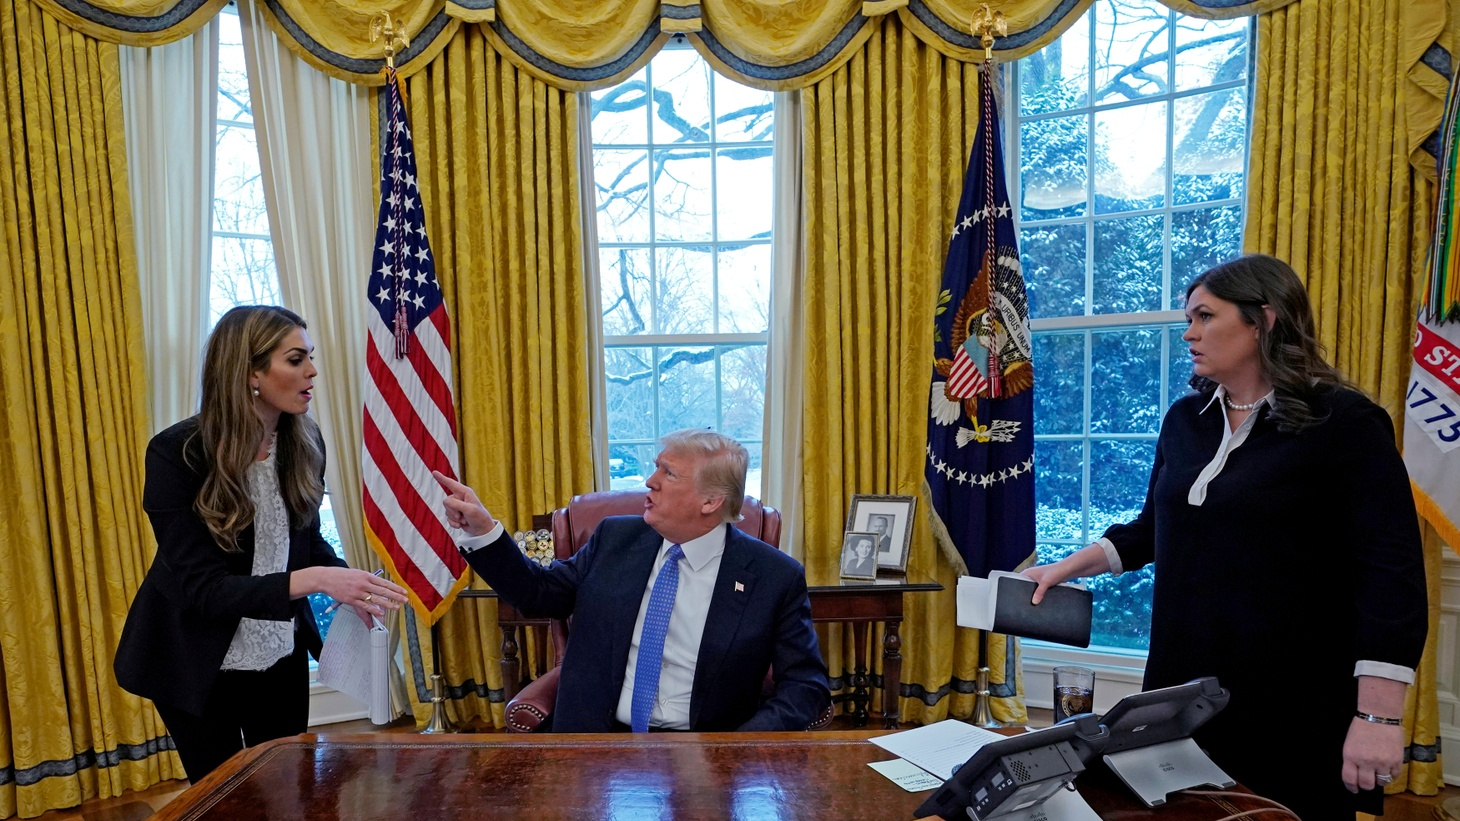 U.S. President Donald Trump confers with White House Communications Director Hope Hicks (L) as White House Press Secretary Sarah Sanders listens during an interview with Reuters at the White House in Washington, U.S., January 17, 2018.